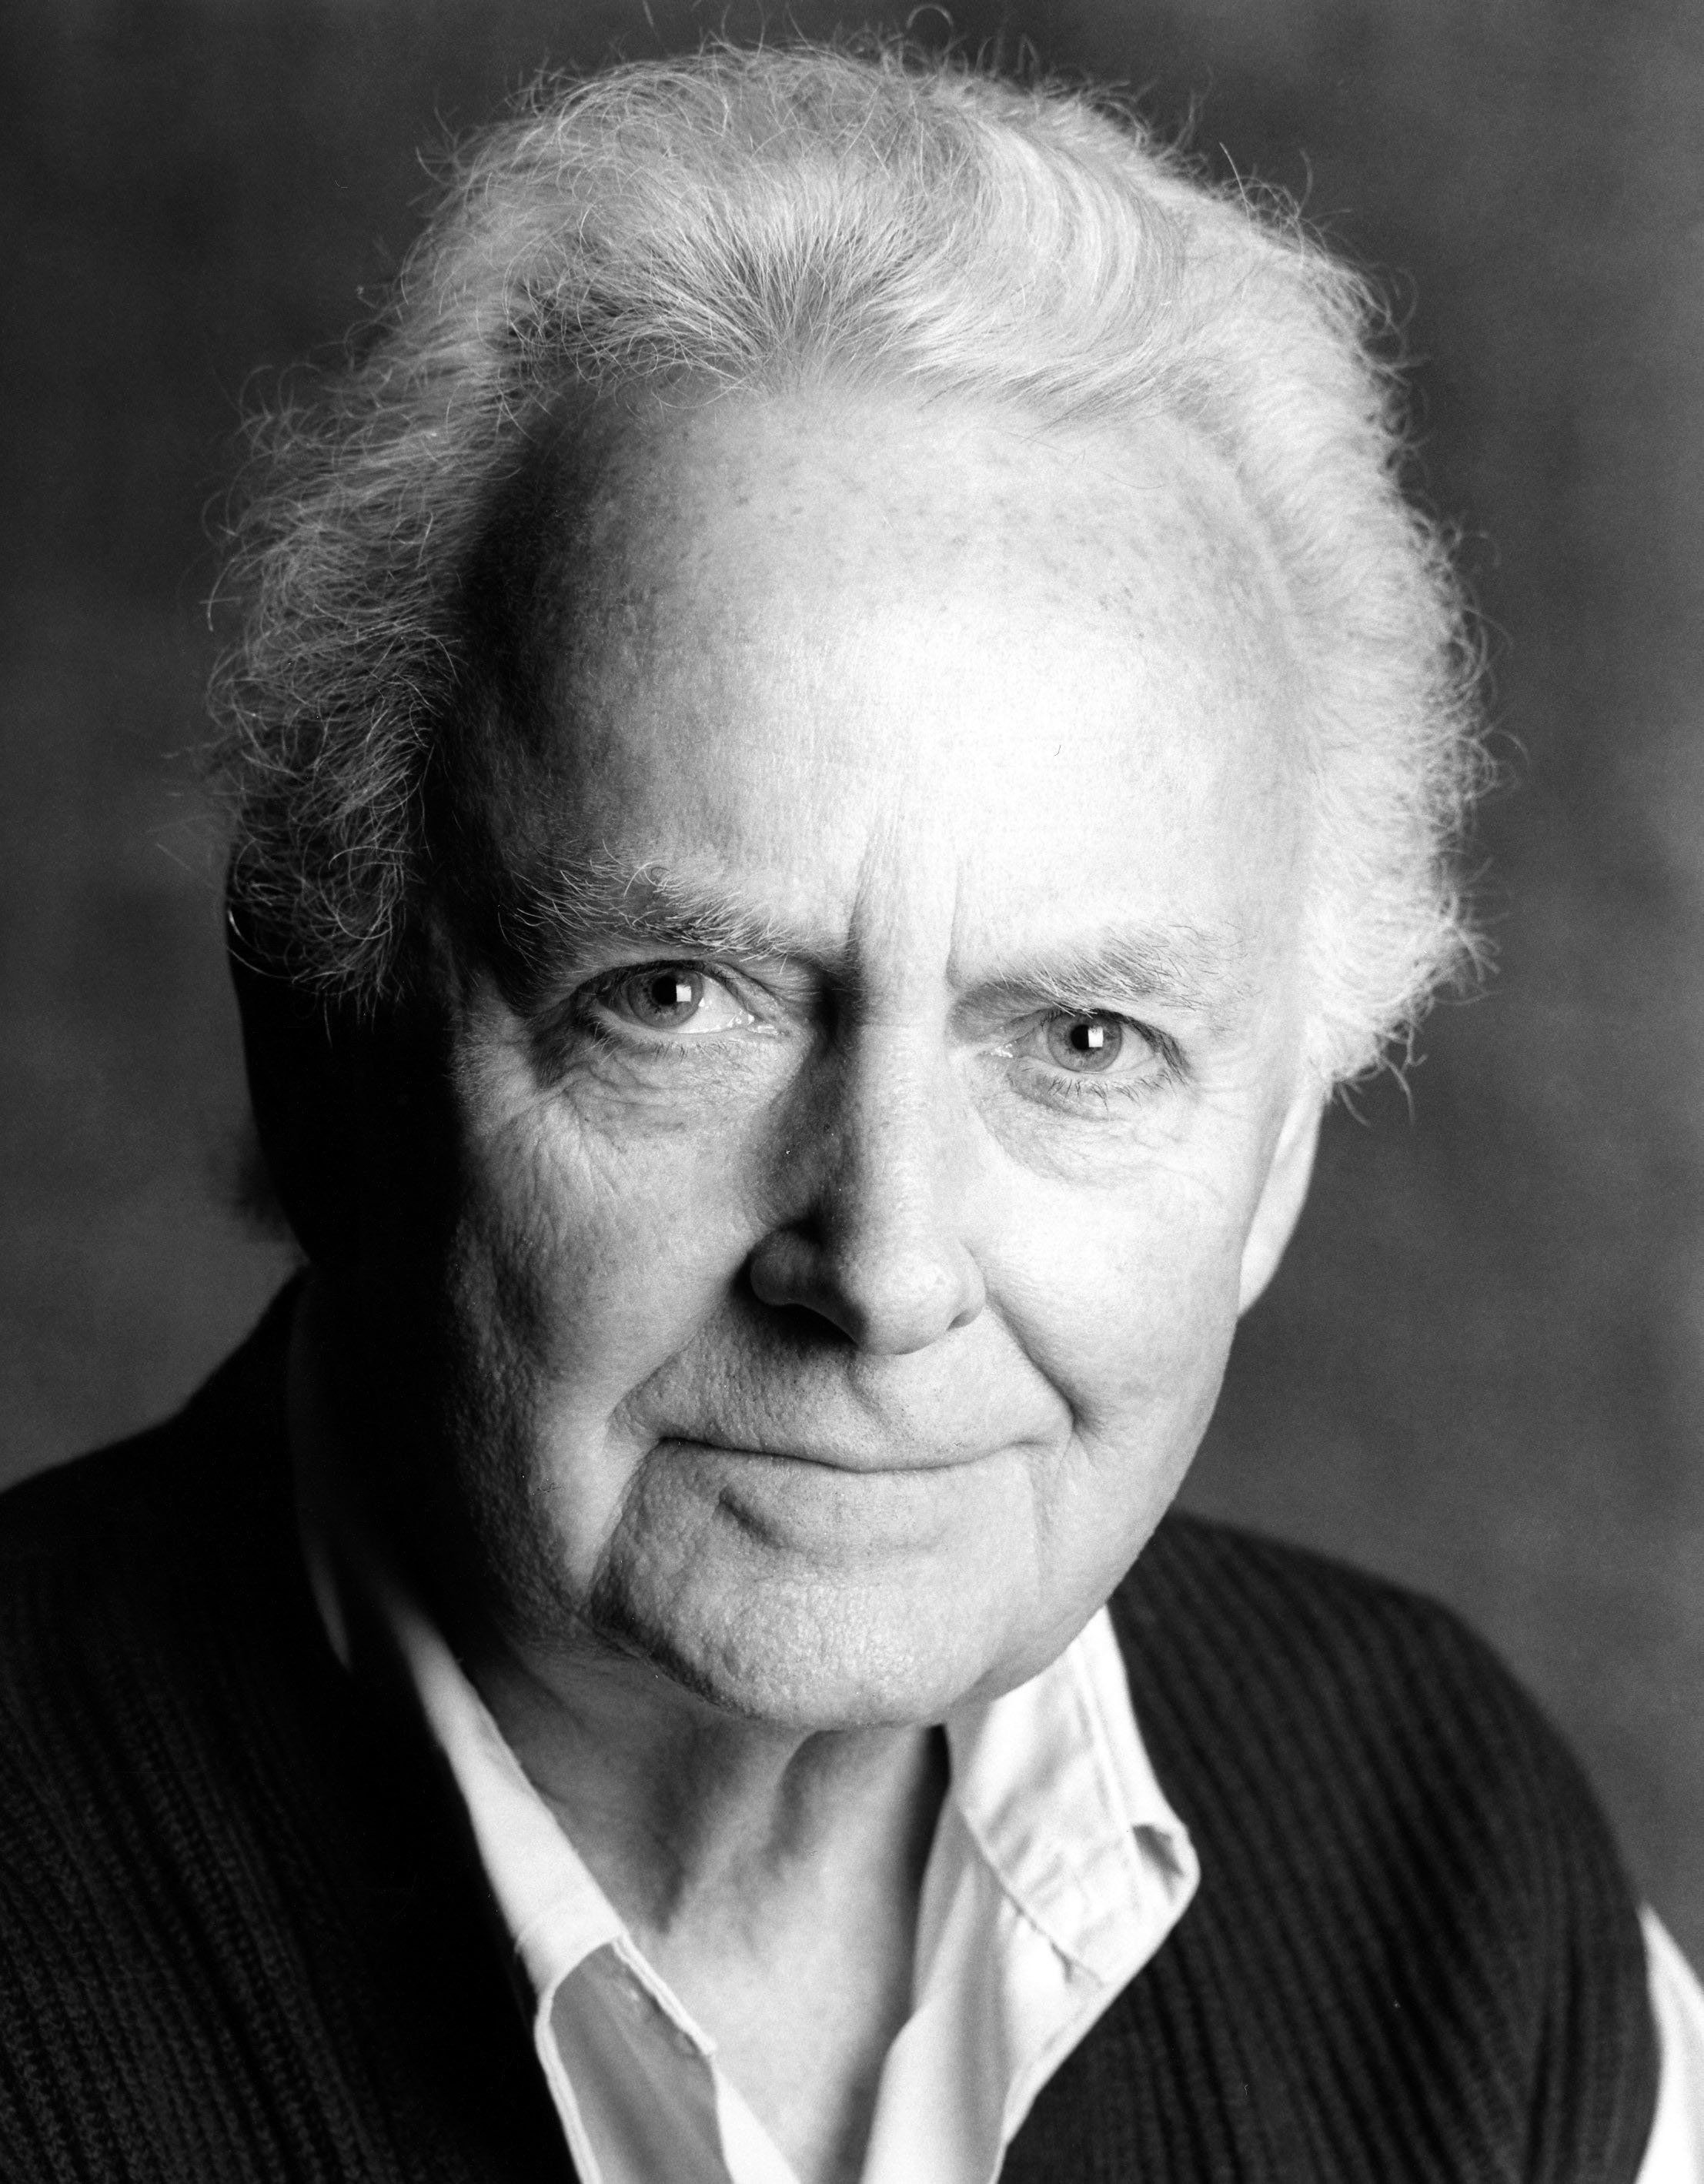 Douglas Rain, the sinister voice of HAL in 2001